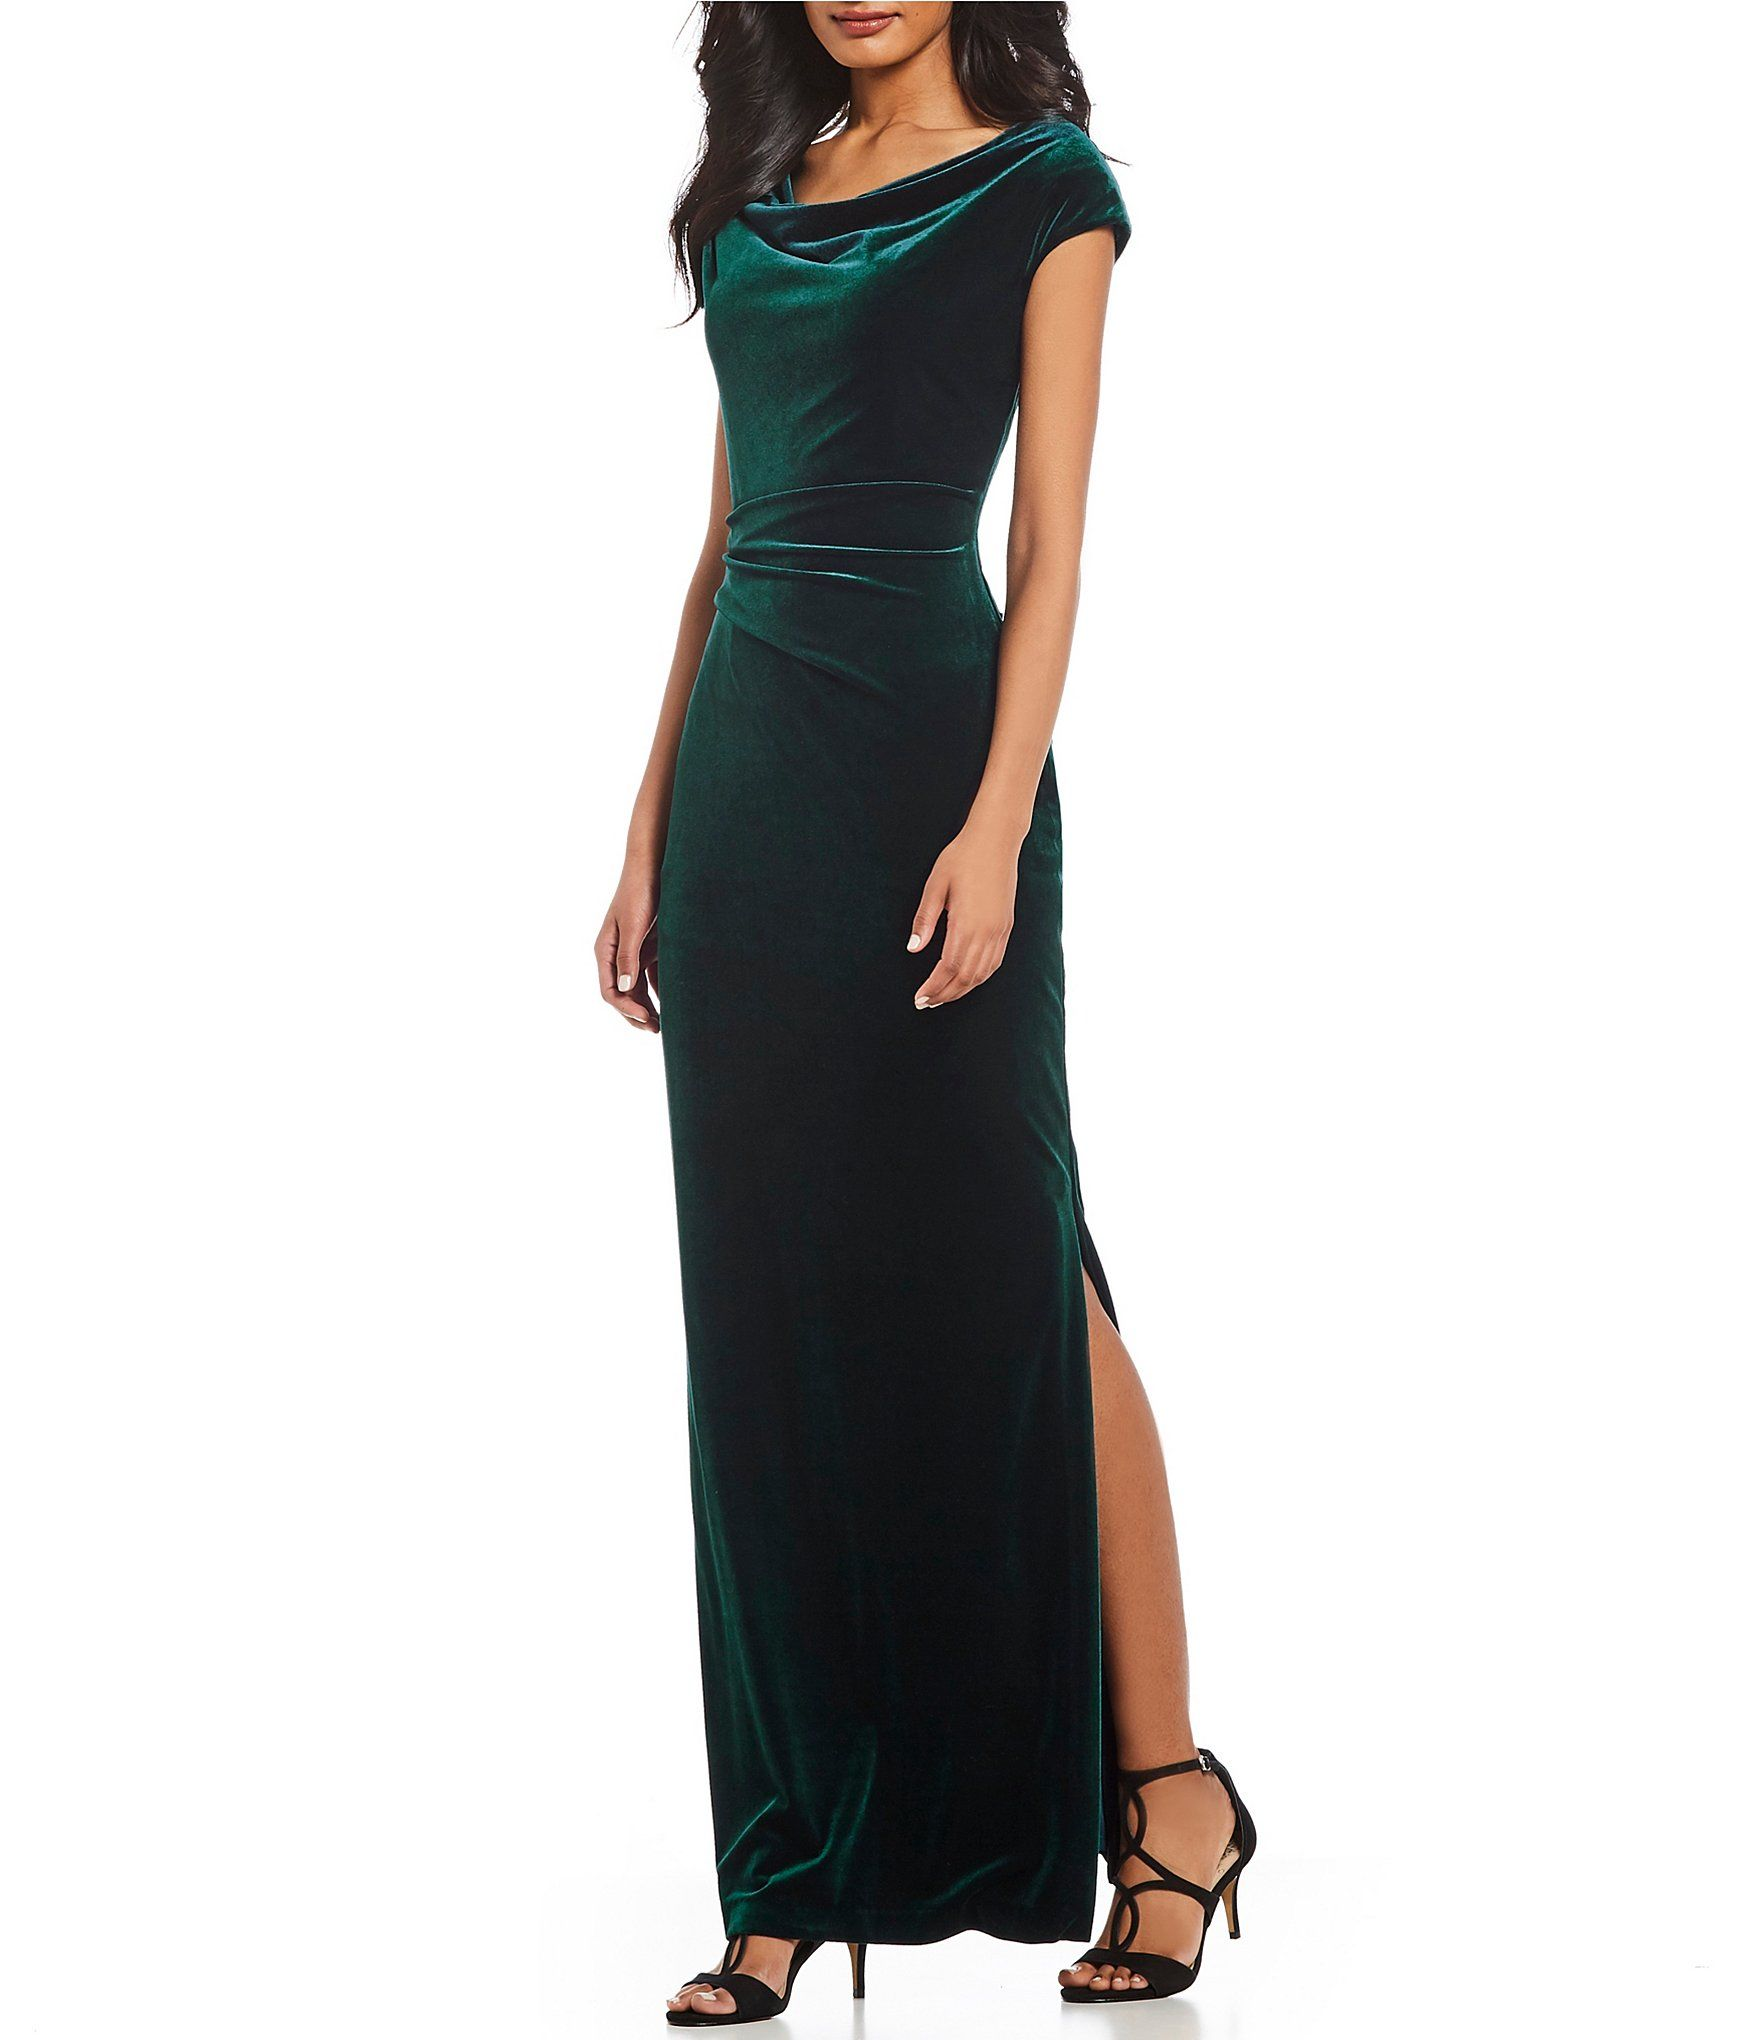 Vince Camuto Ruched Cap Sleeve Velvet Gown Dillards Velvet Dress Long Velvet Gown Velvet Bridesmaid Dresses [ 2040 x 1760 Pixel ]